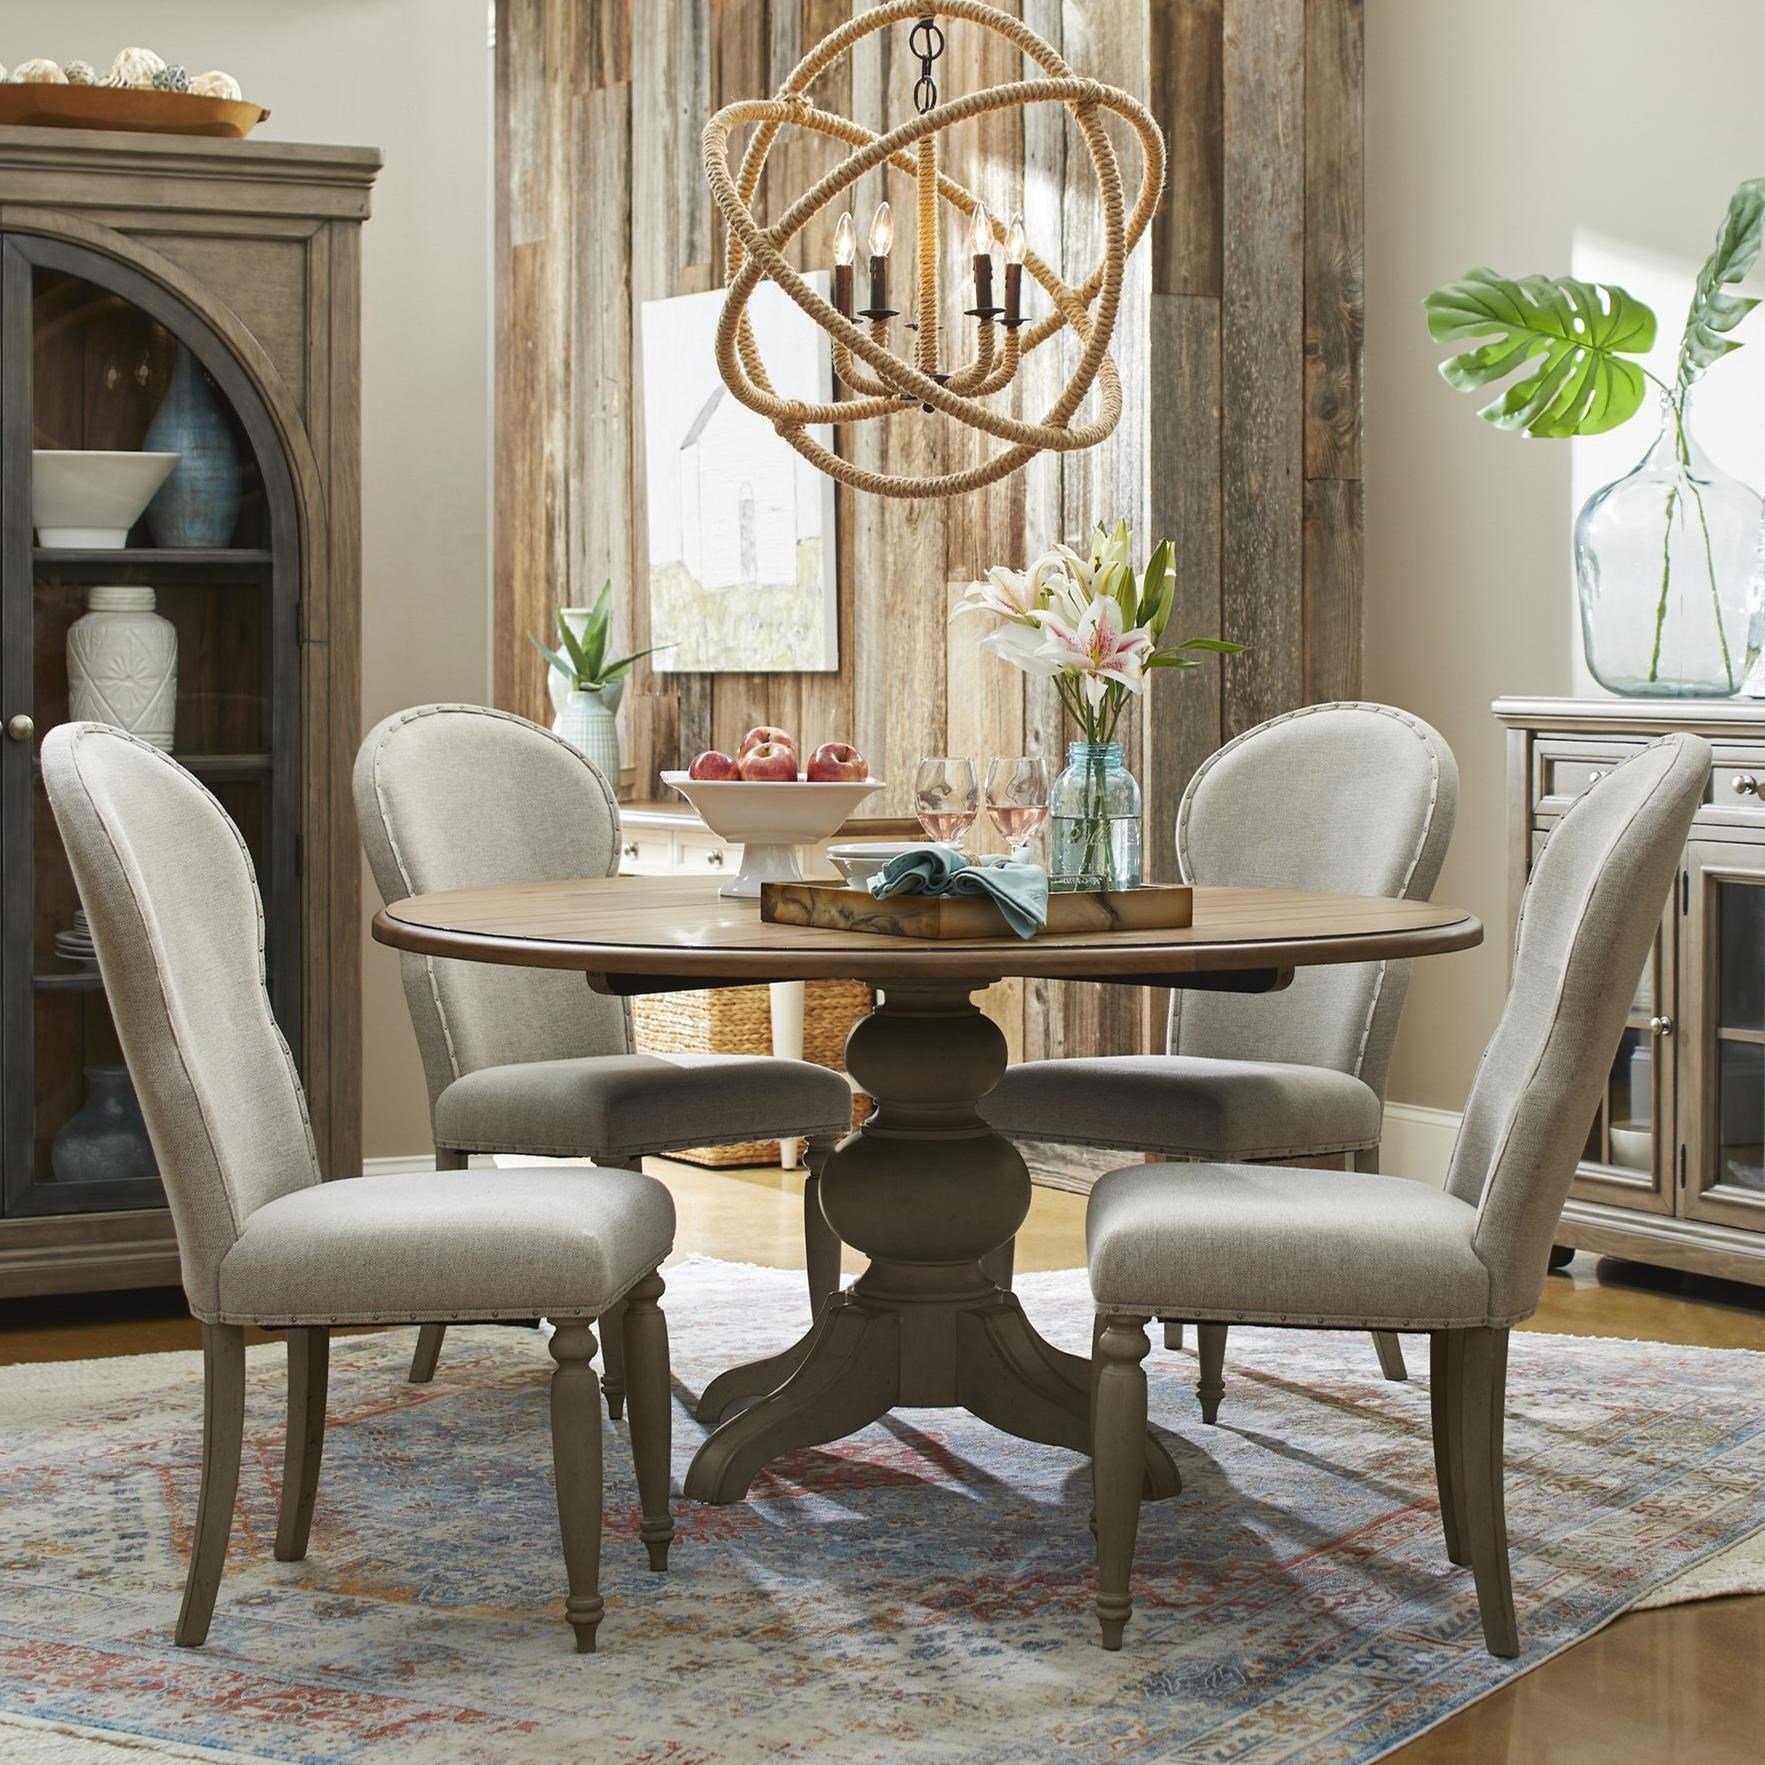 Nashville 5-Piece Dining Set by Trisha Yearwood Home Collection by Klaussner at Johnny Janosik